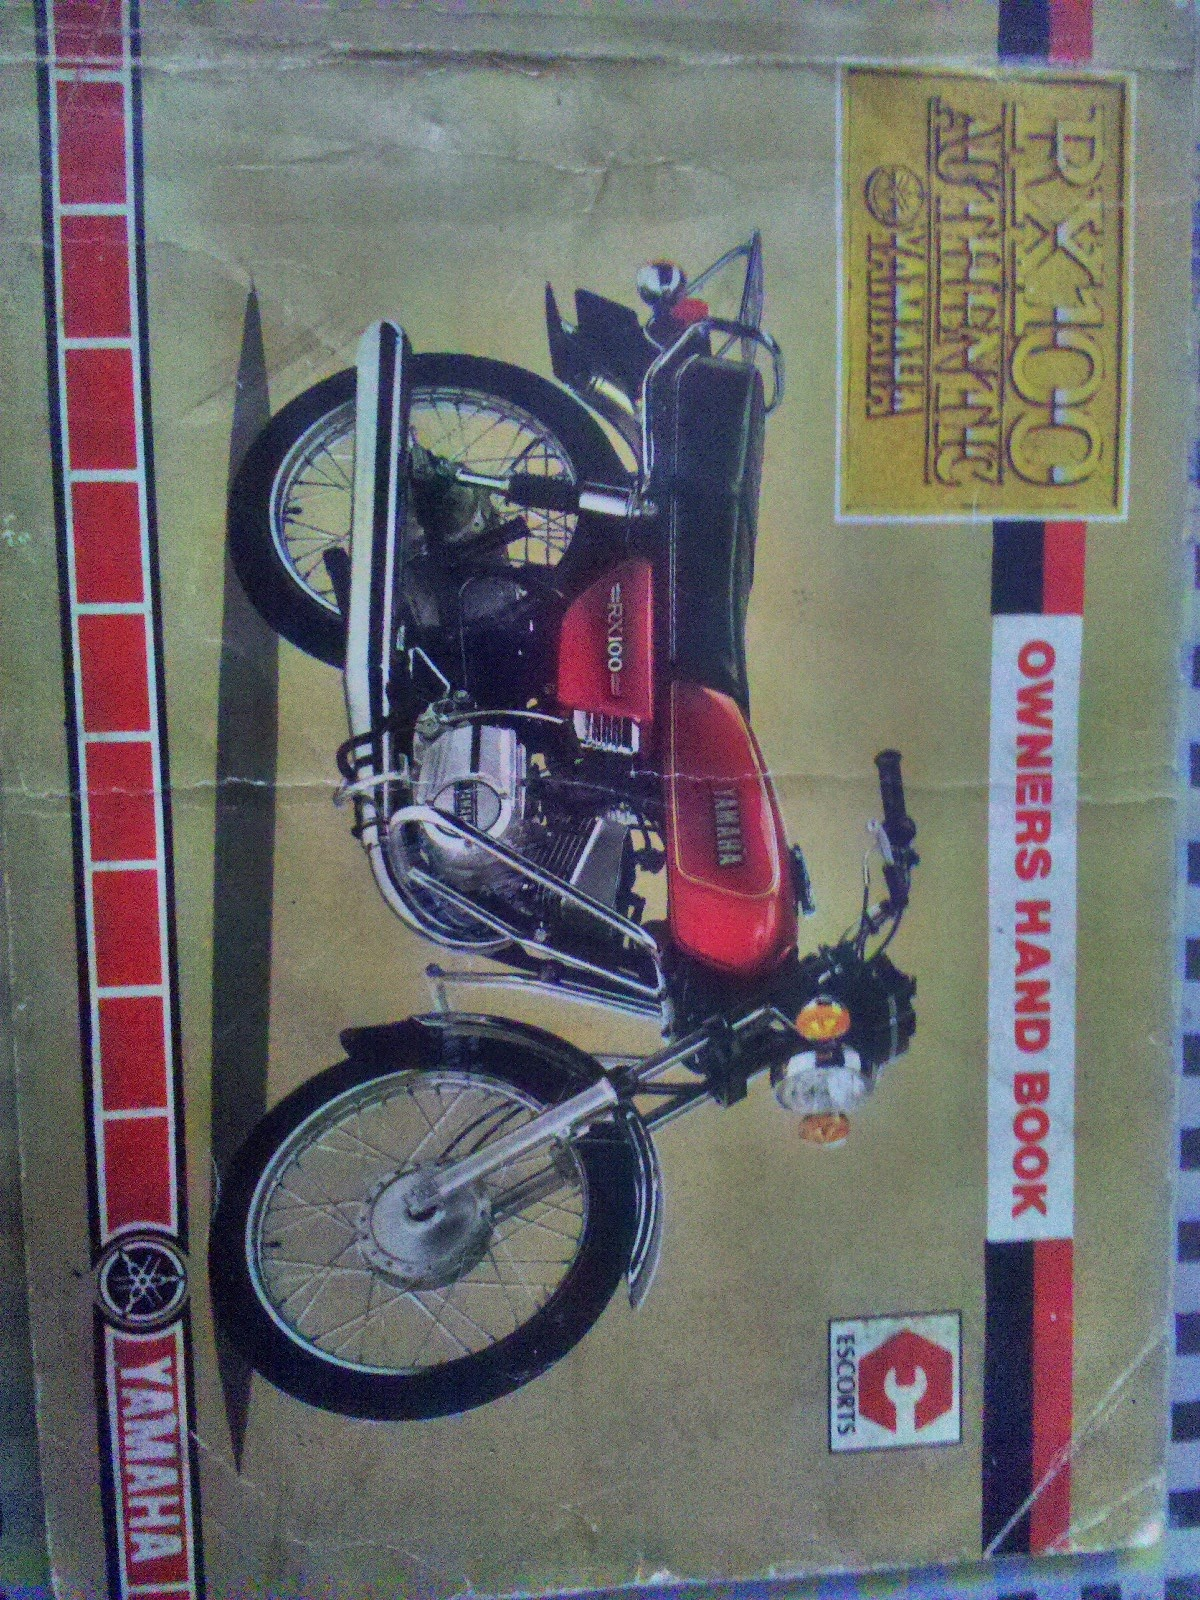 rare motorcycle yamaha rx 100 owners manual rh oldraremotorcycles blogspot com Yamaha RX 100 Modified yamaha rx 100 service manual